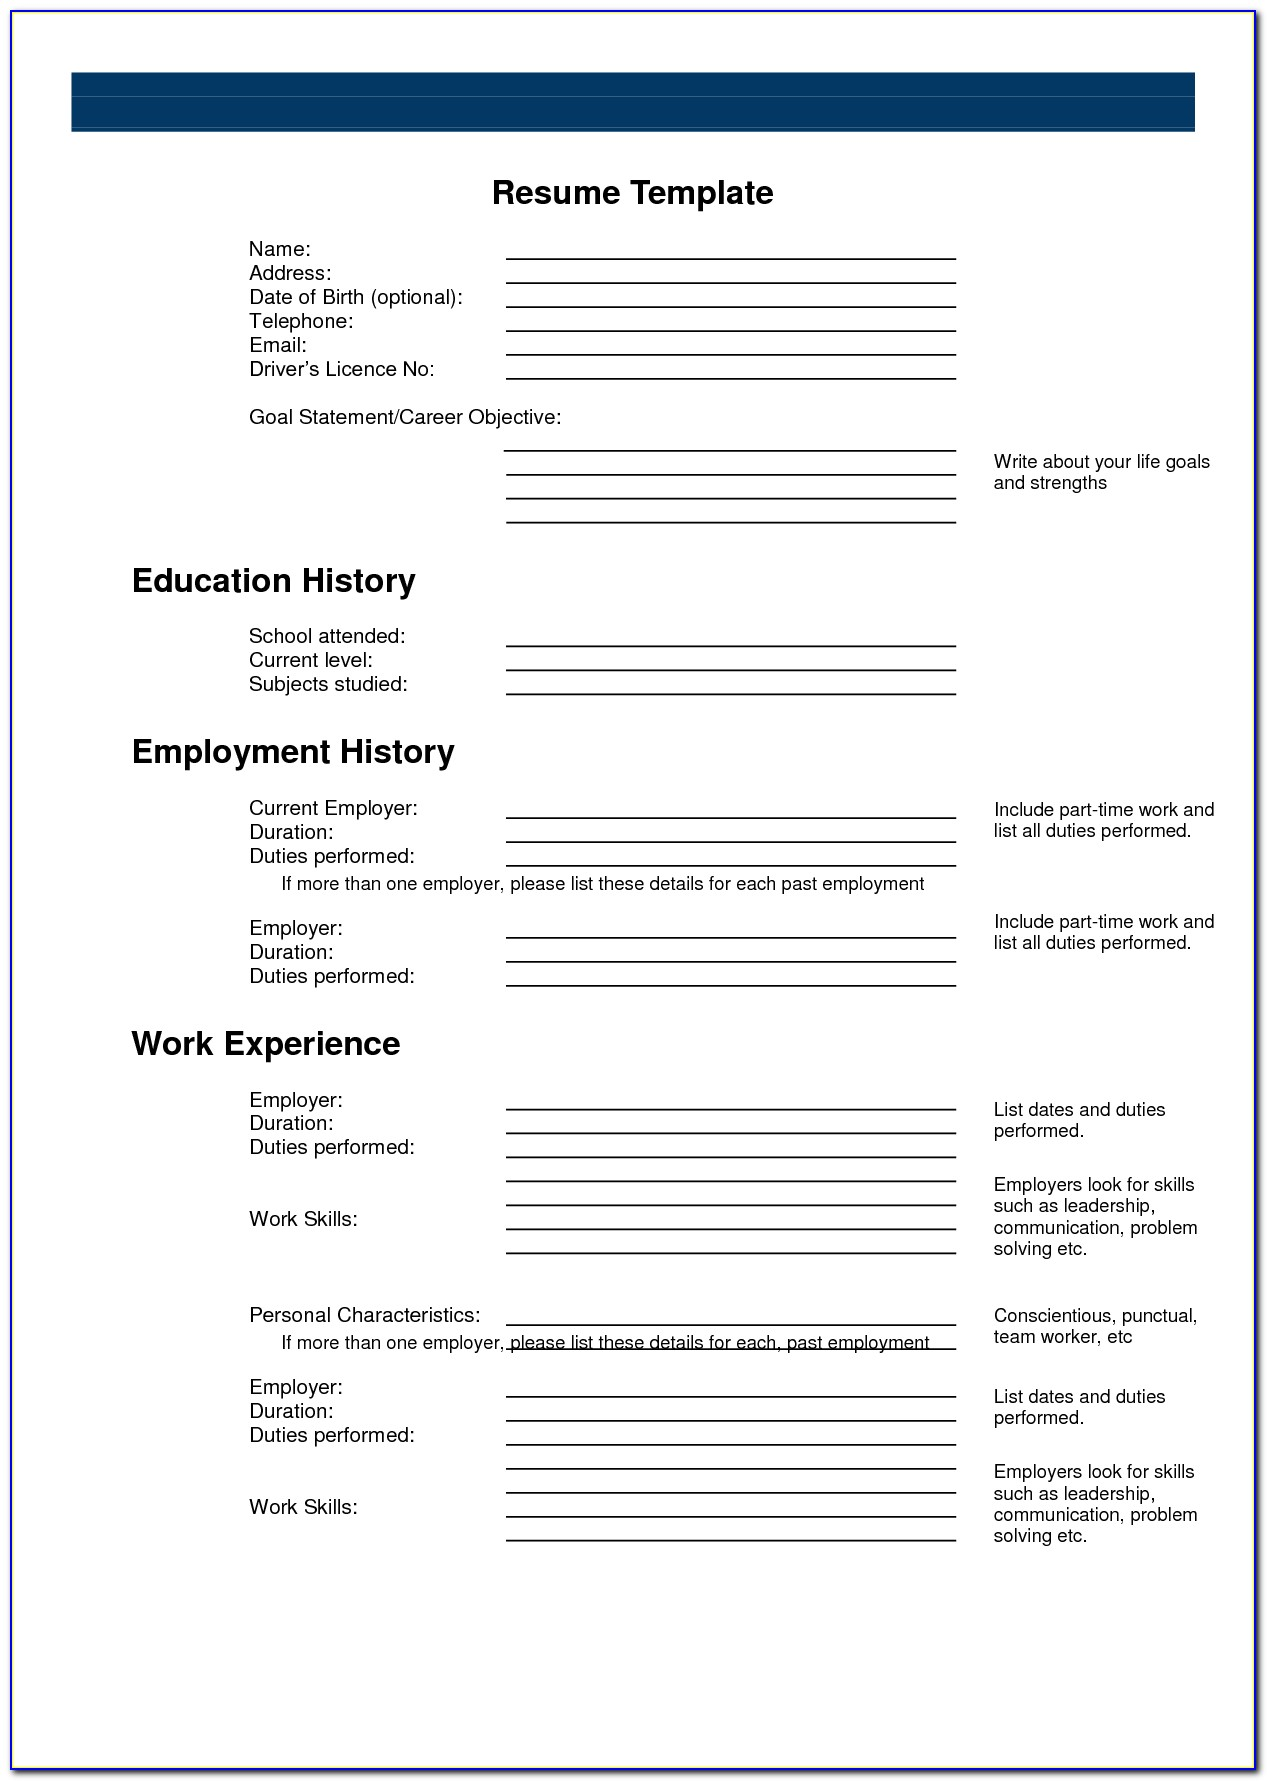 Free Resume Templates To Fill In And Print